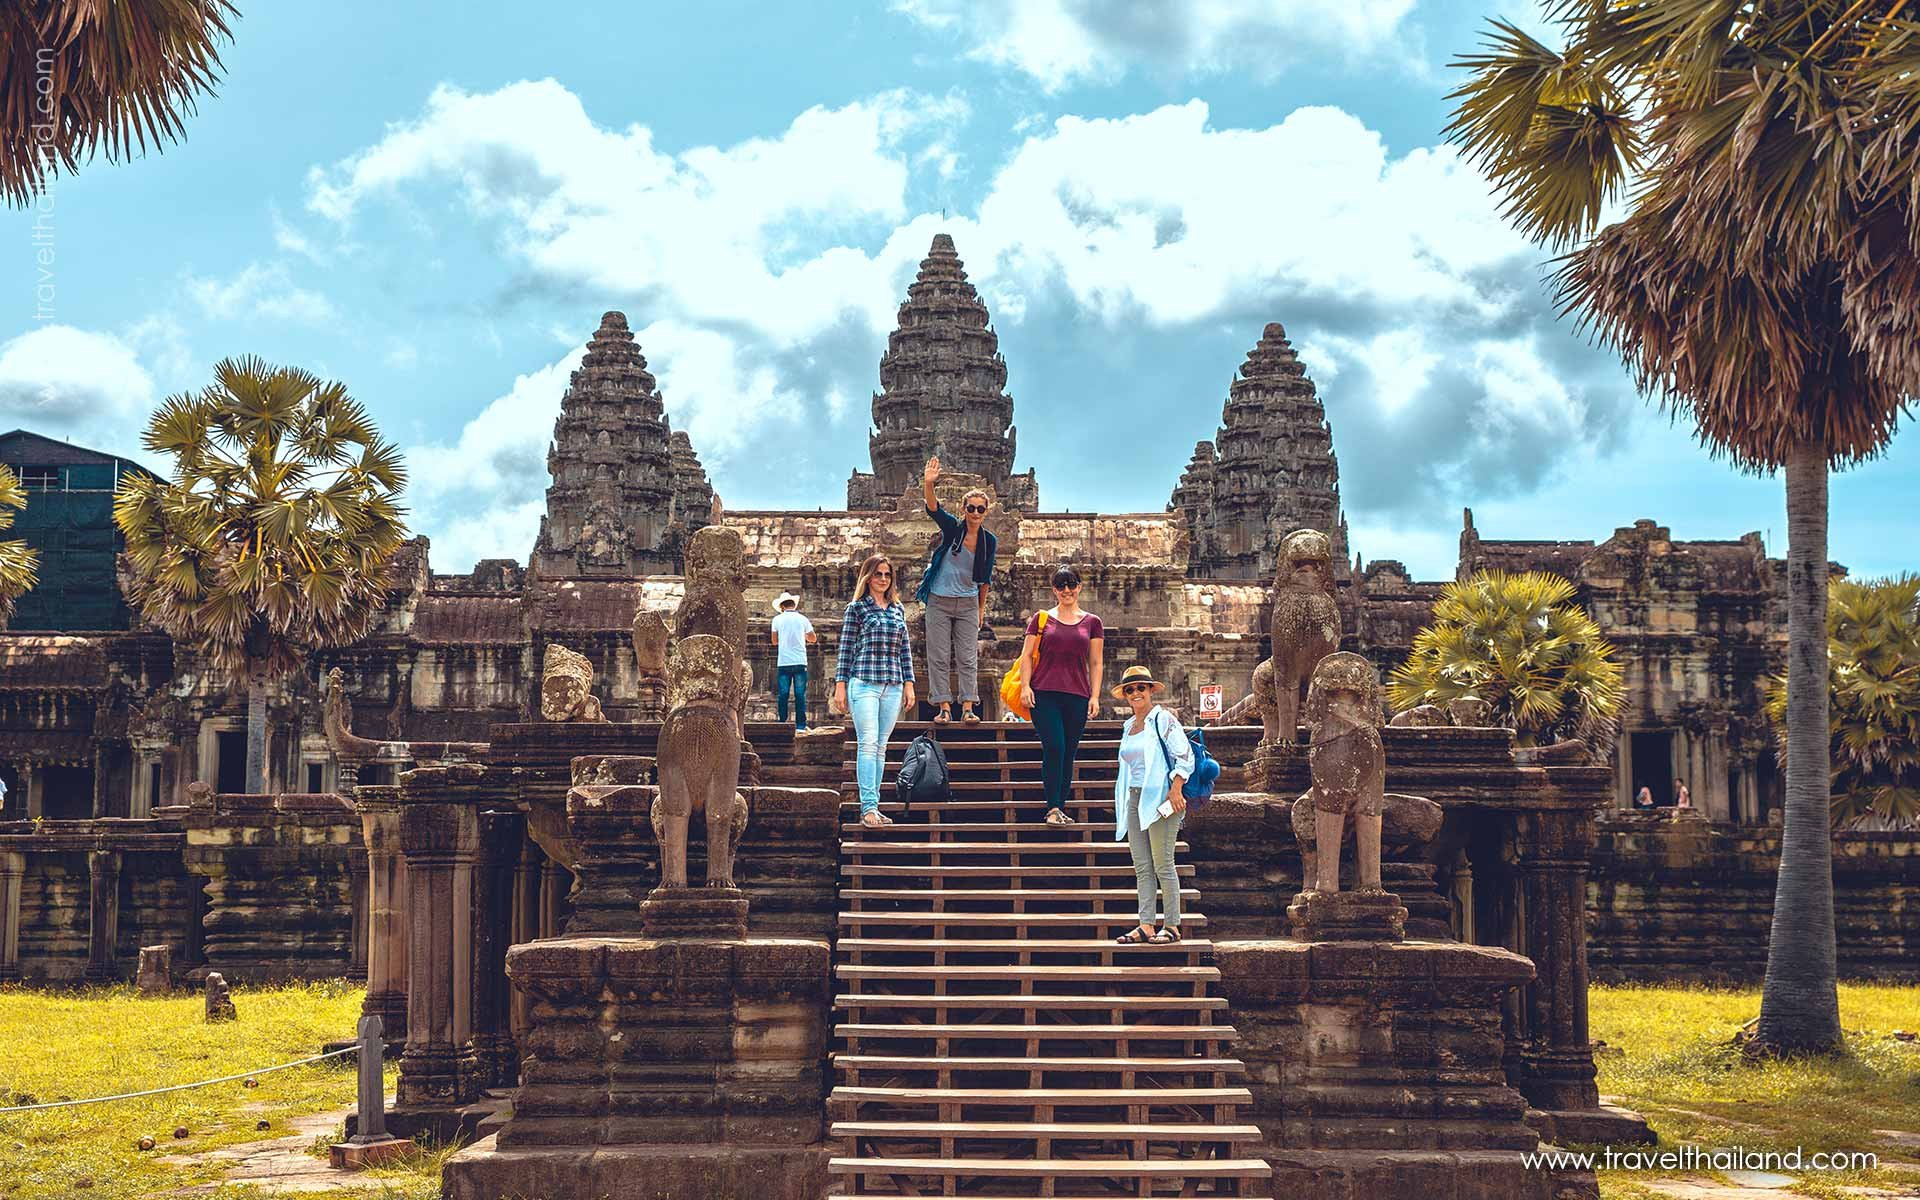 Thailand, Laos and Cambodia Discover 25 days